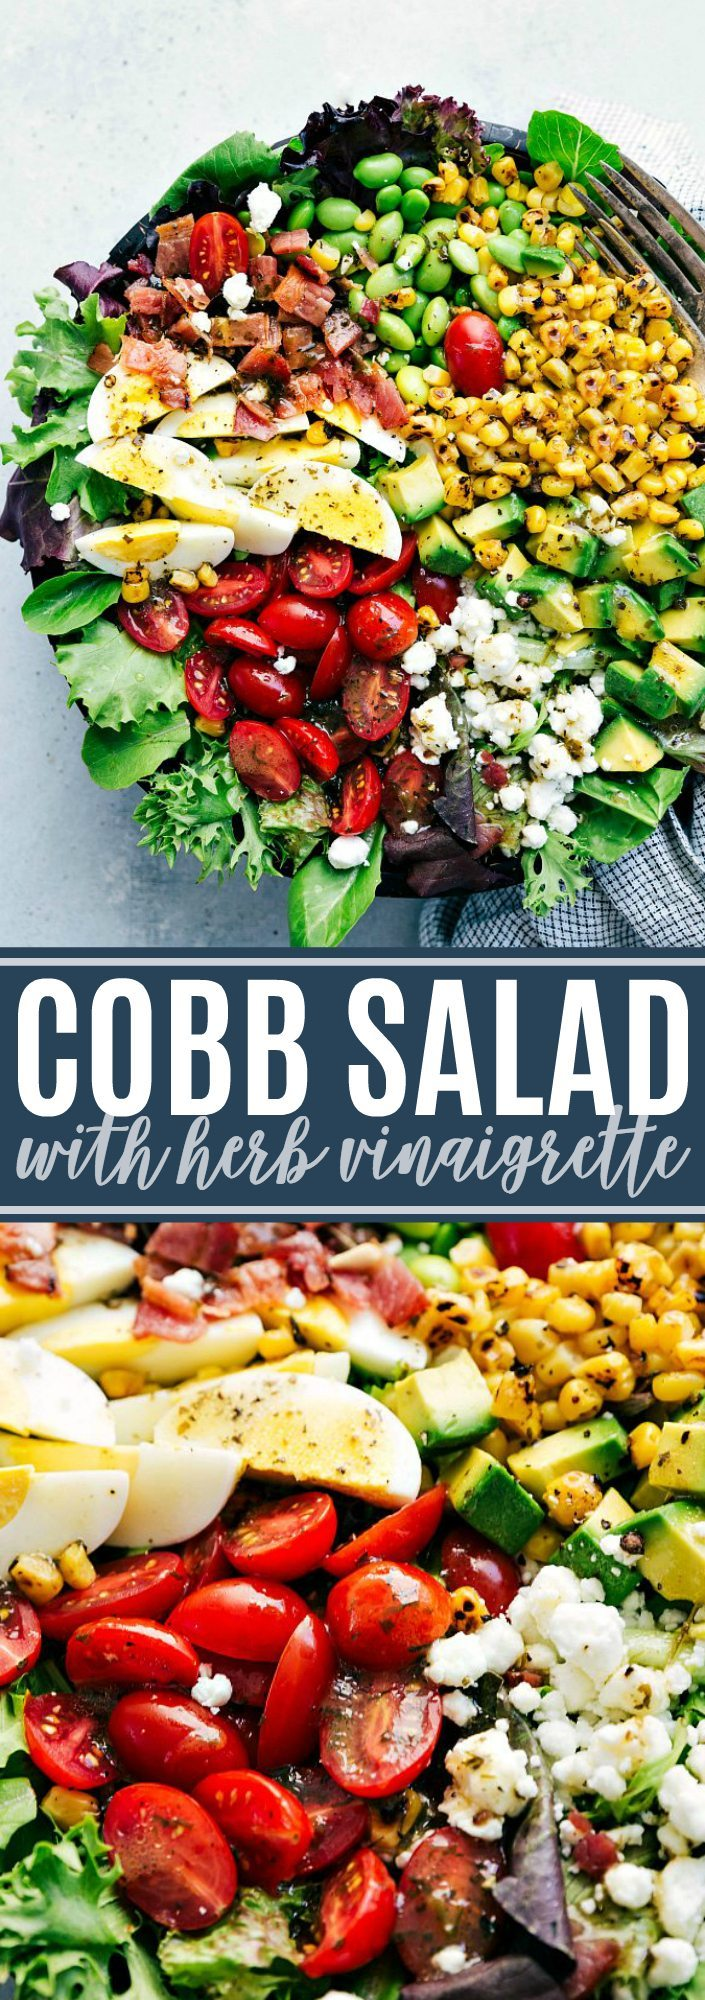 The ultimate BEST EVER easy COBB SALAD with a delicious tangy herb vinaigrette. via chelseasmessyapron.com #cobb #salad #healthy #easy #chickfila #zupas #egg #avocado #tomato #goatcheese #delicious #cobbsalad #chef #salad